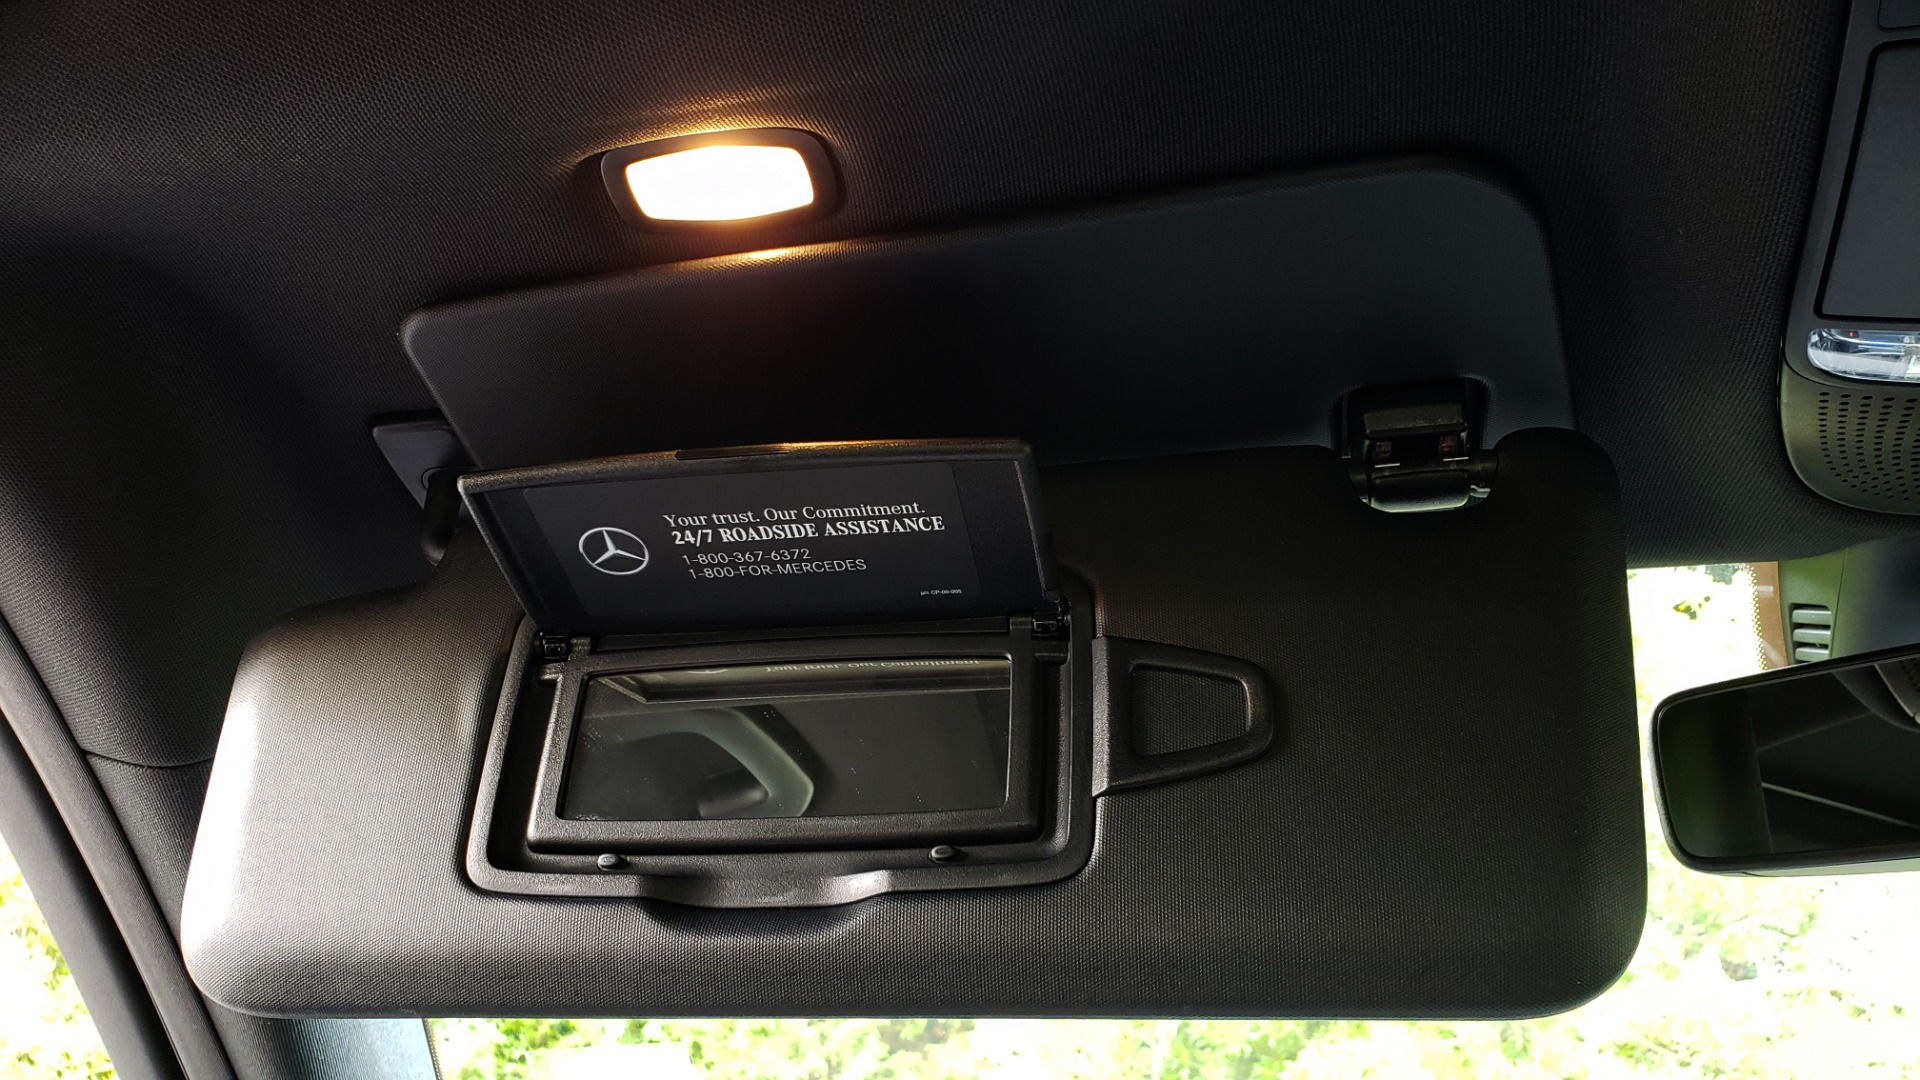 Used 2017 Mercedes-Benz E-CLASS E 300 SPORT 4MATIC / PREM PKG / NAV / SUNROOF / BURMESTER SND / REARVIEW for sale Sold at Formula Imports in Charlotte NC 28227 50